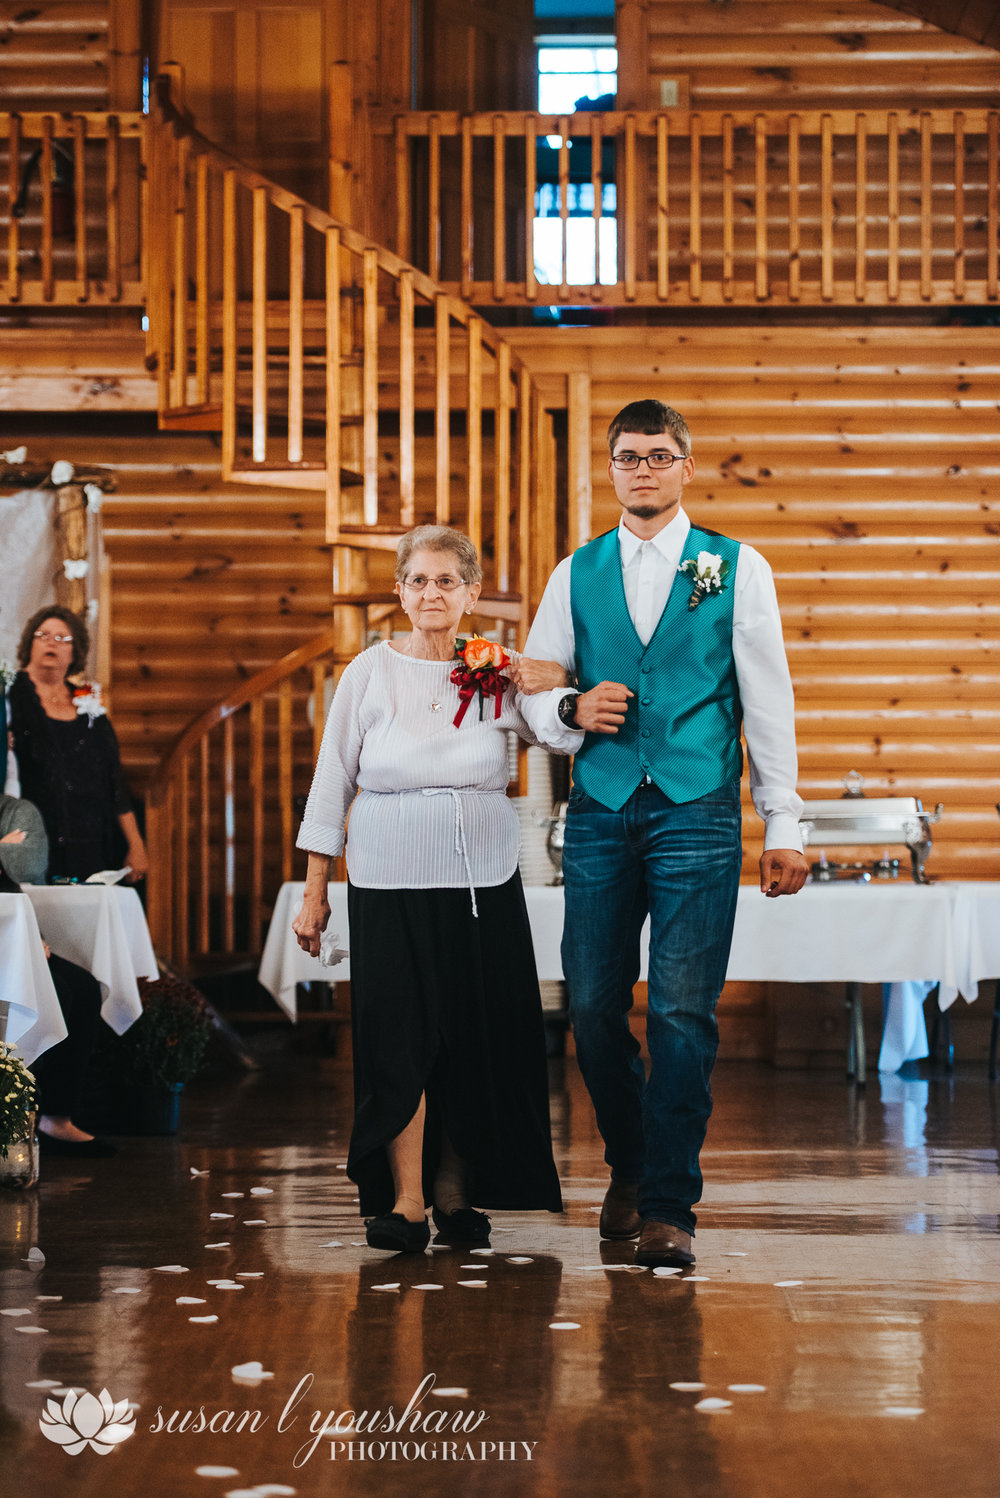 Blog Kayla and Scott 10-27-2018 SLY Photography LLC -51.jpg